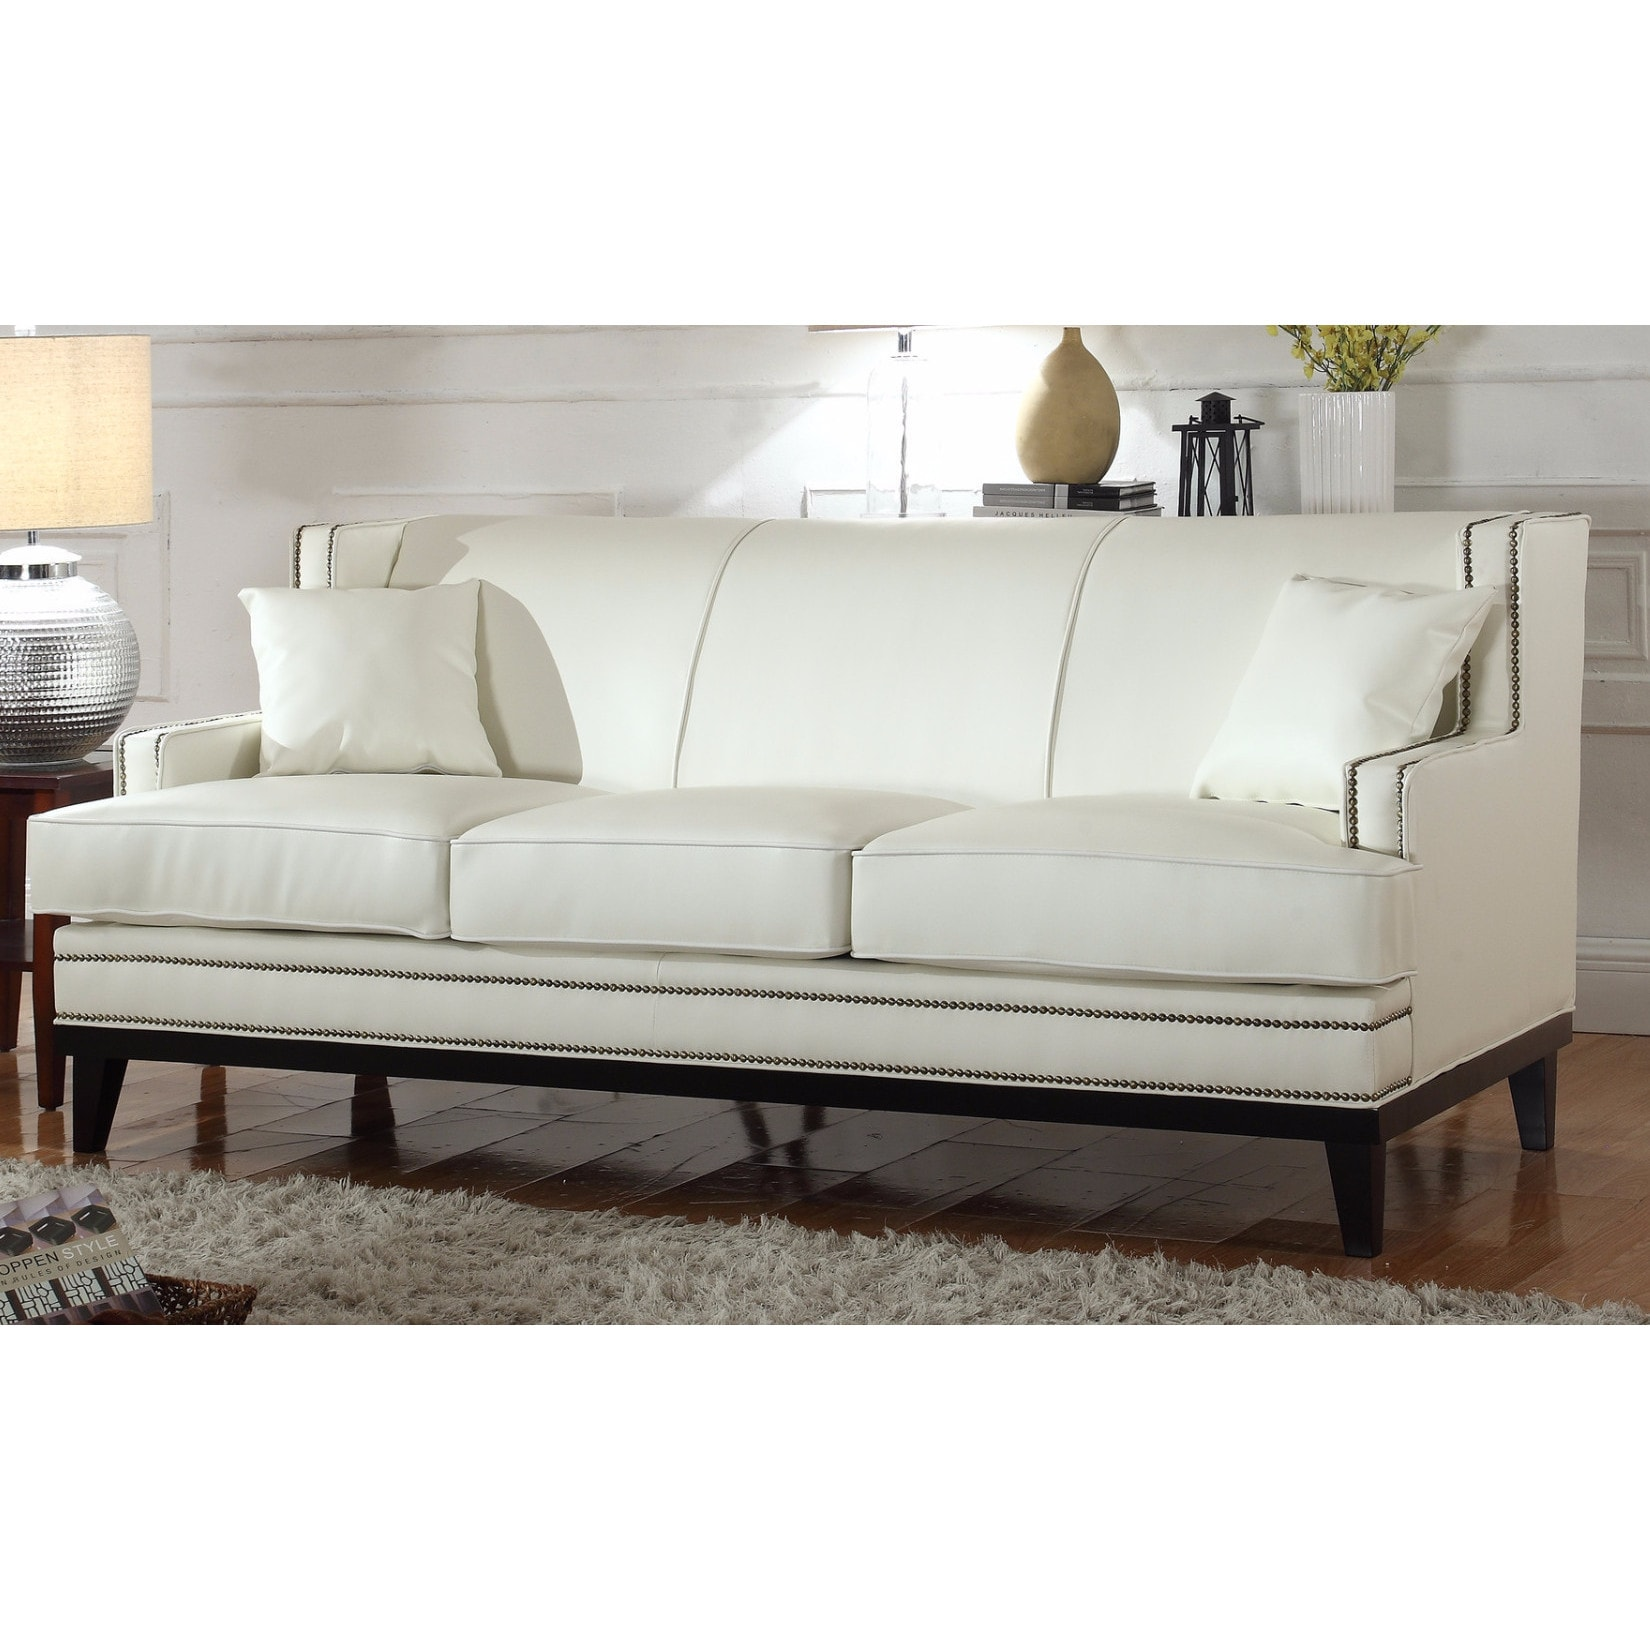 Modern Soft Bonded Leather Sofa With Nailhead Trim Details   Free Shipping  Today   Overstock   19948696